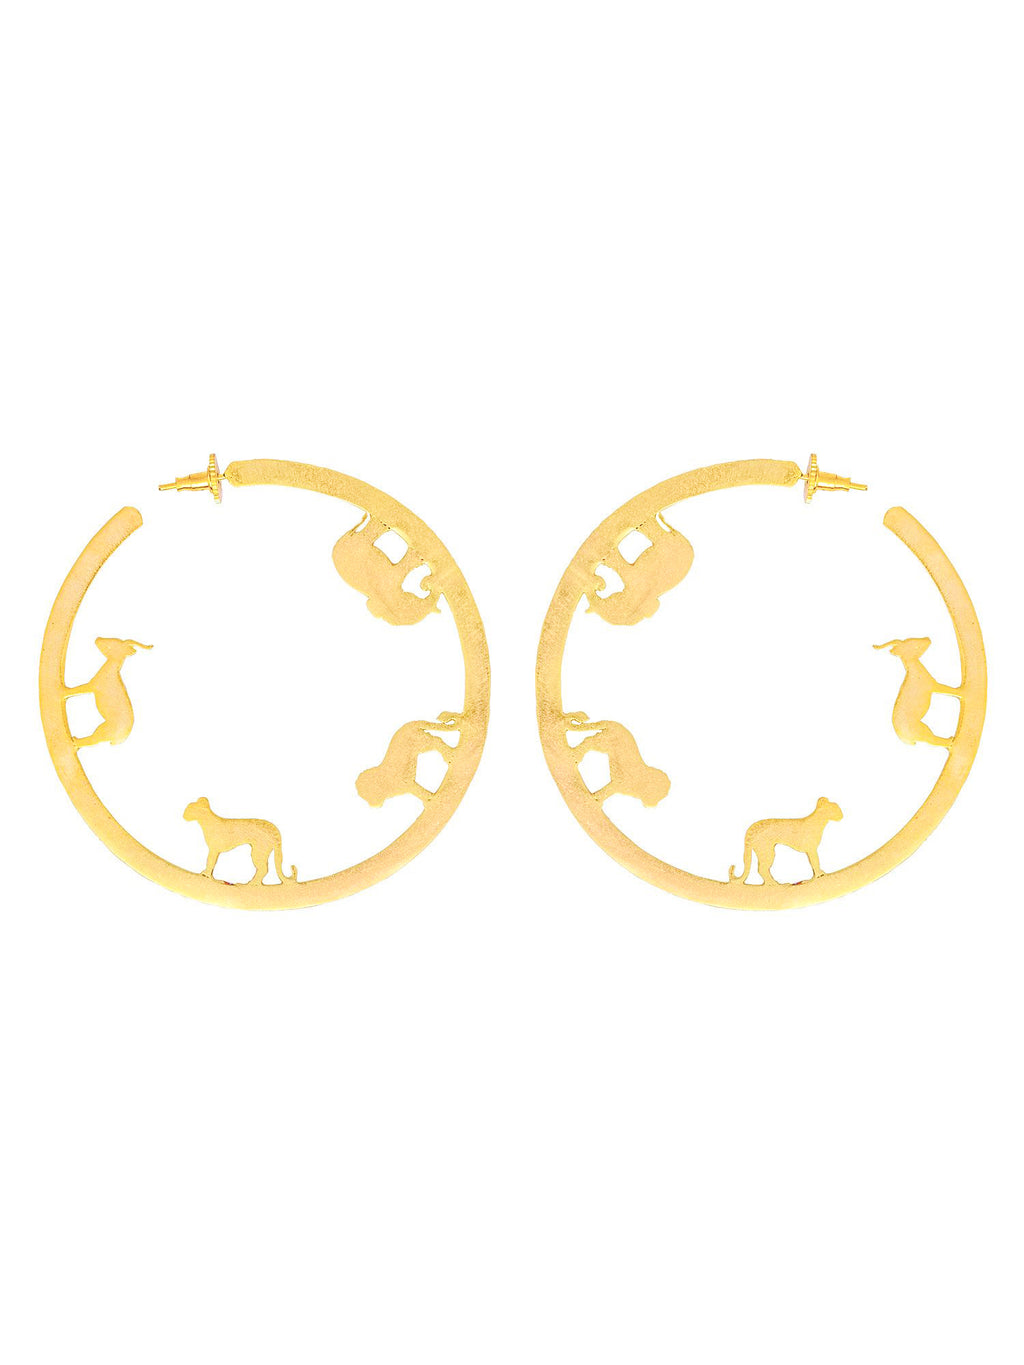 Ode Hoops Small Earrings - Riviera Closet